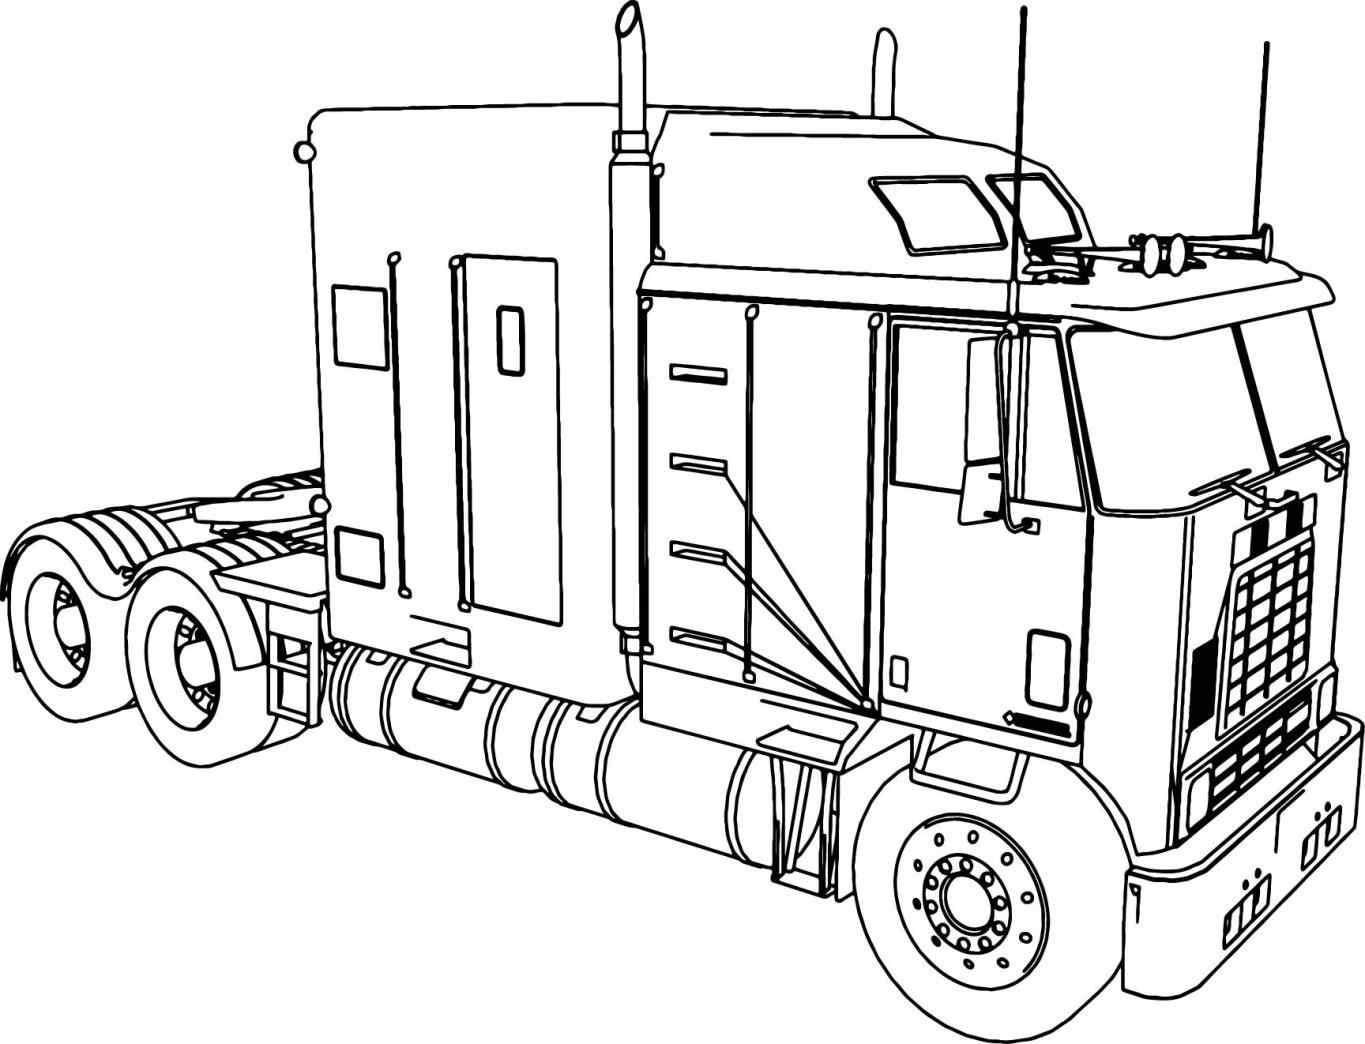 coloring truck pages gmc truck coloring pages at getcoloringscom free coloring truck pages